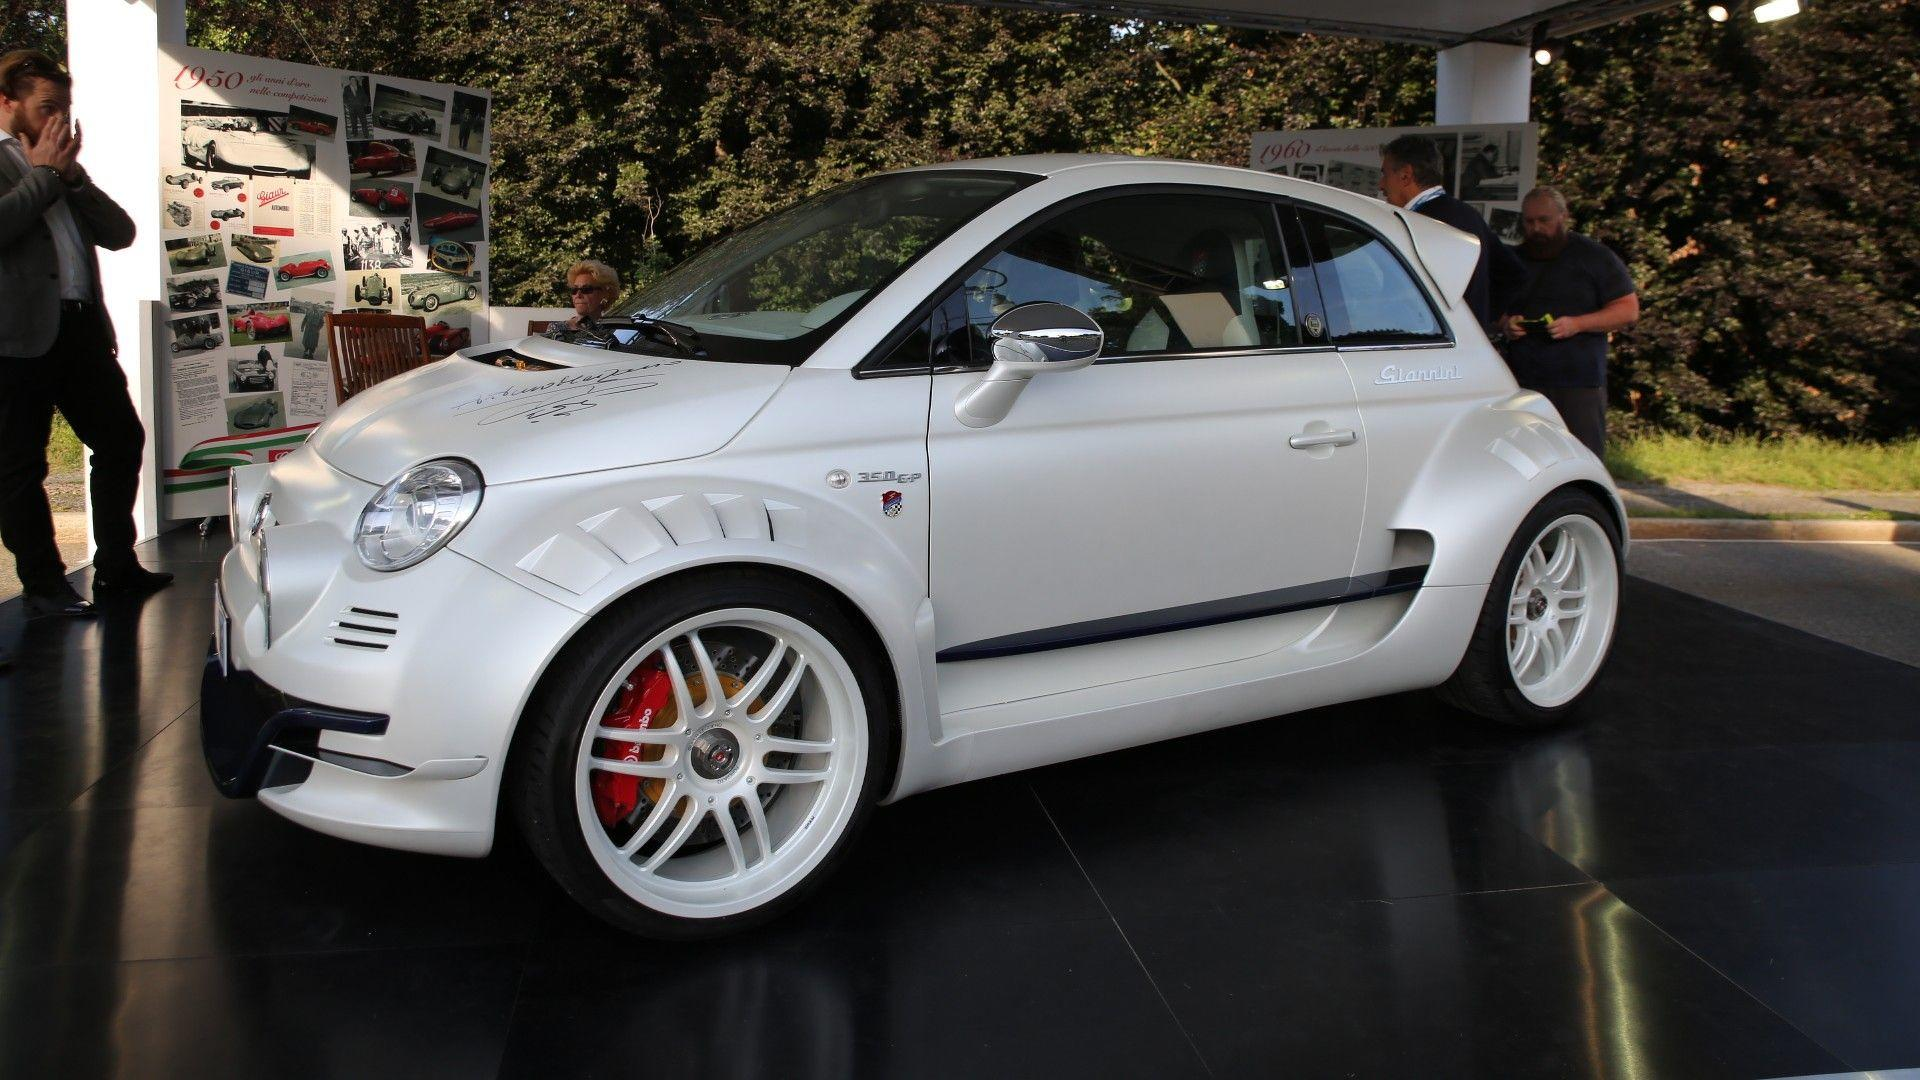 fiat 500 giannini is super city car with 350 hp from alfa. Black Bedroom Furniture Sets. Home Design Ideas